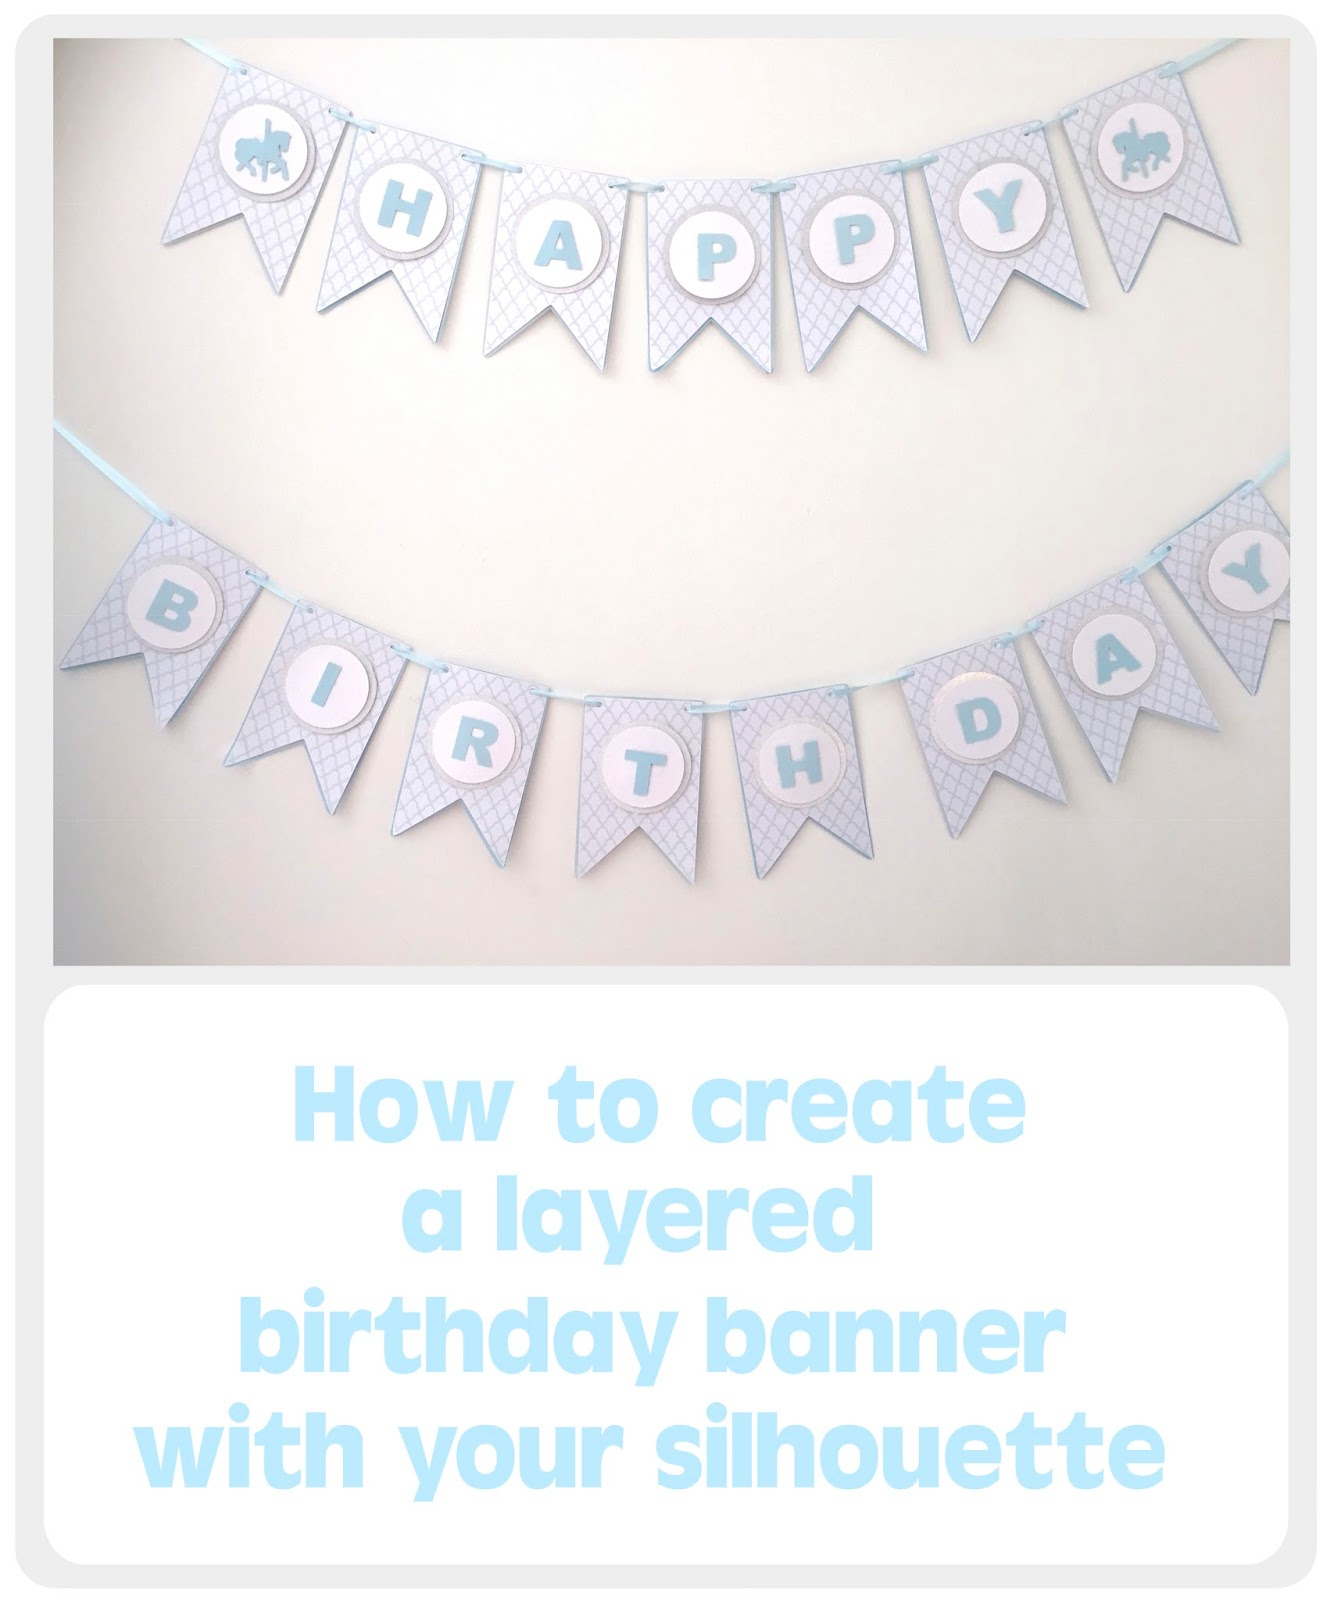 silhouette uk how to create a layered birthday banner